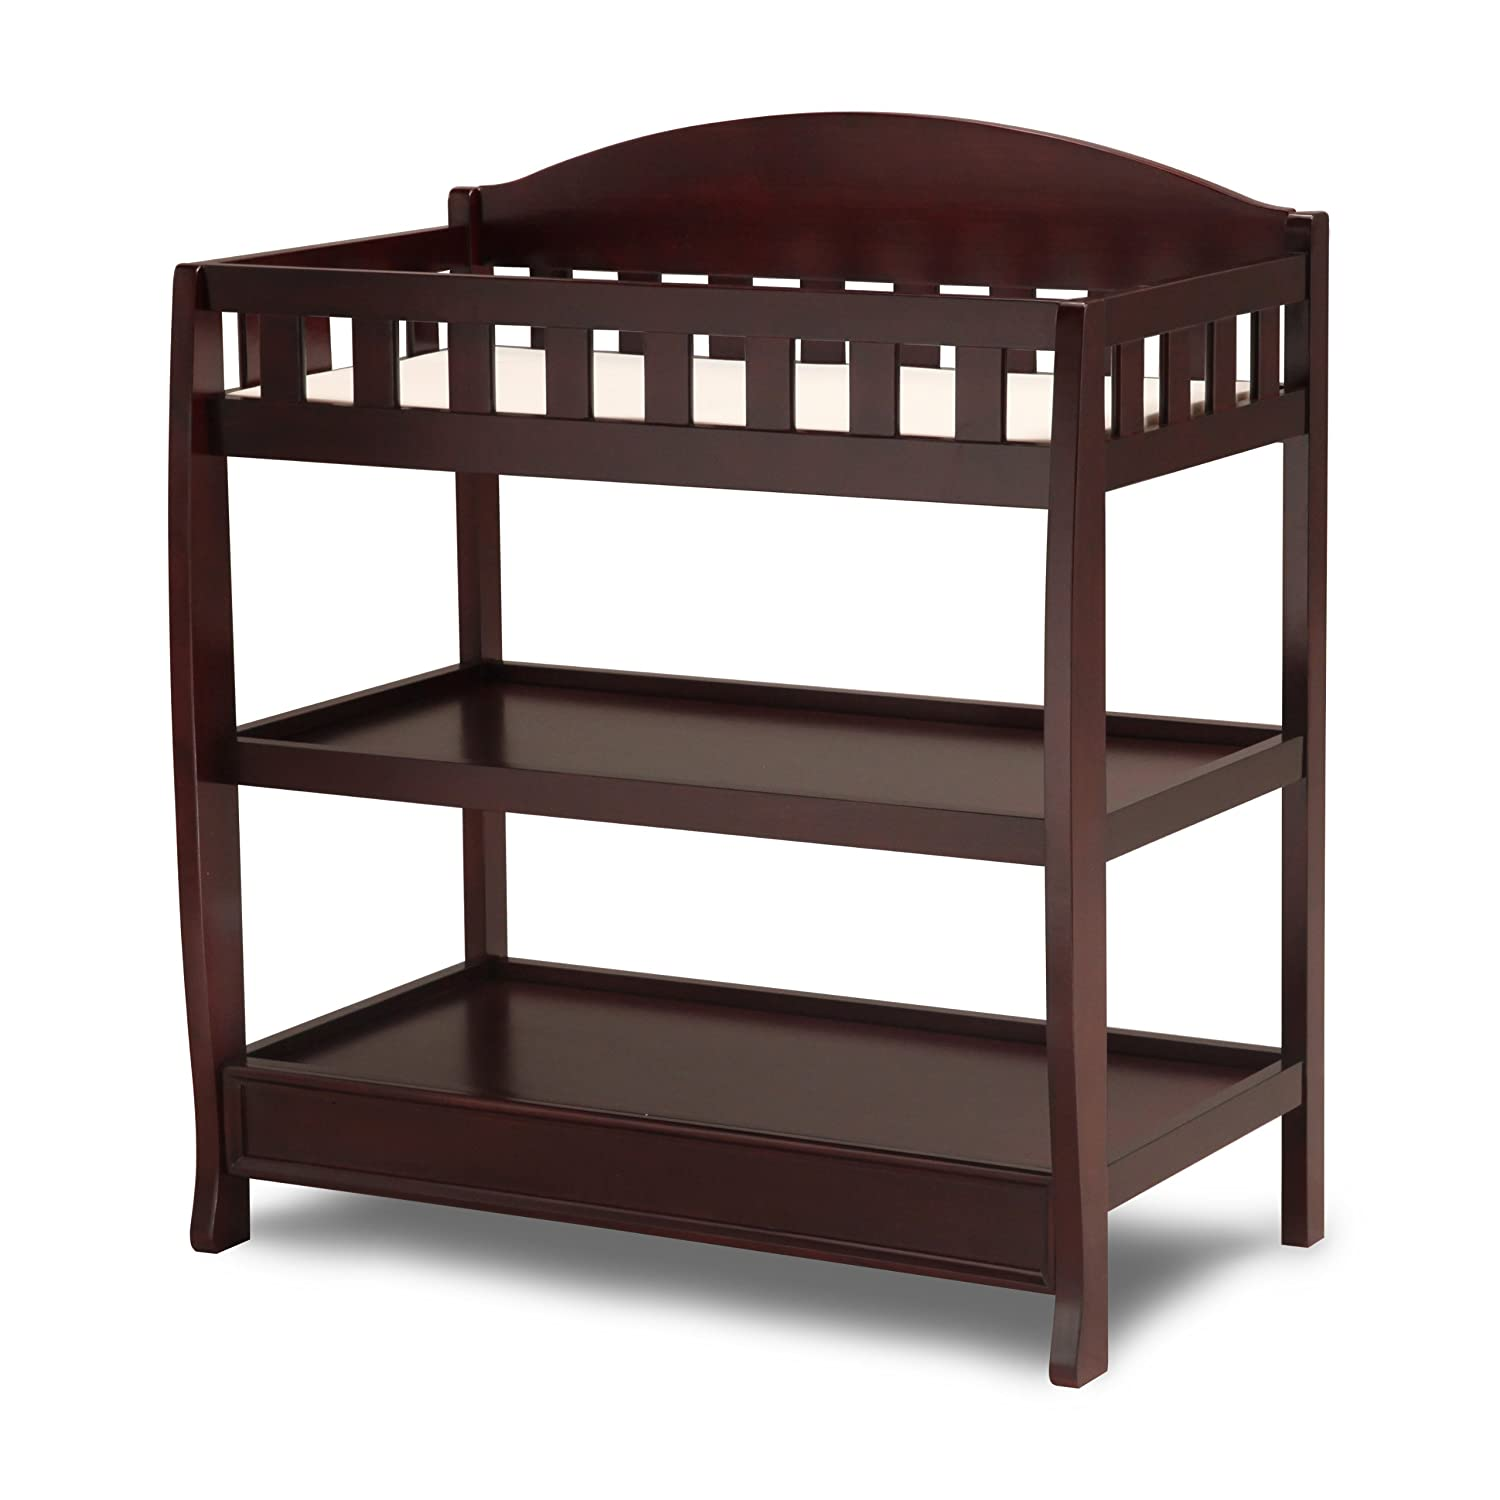 Amazon.com : Delta Children Infant Changing Table With Pad, Espresso Cherry  : Baby